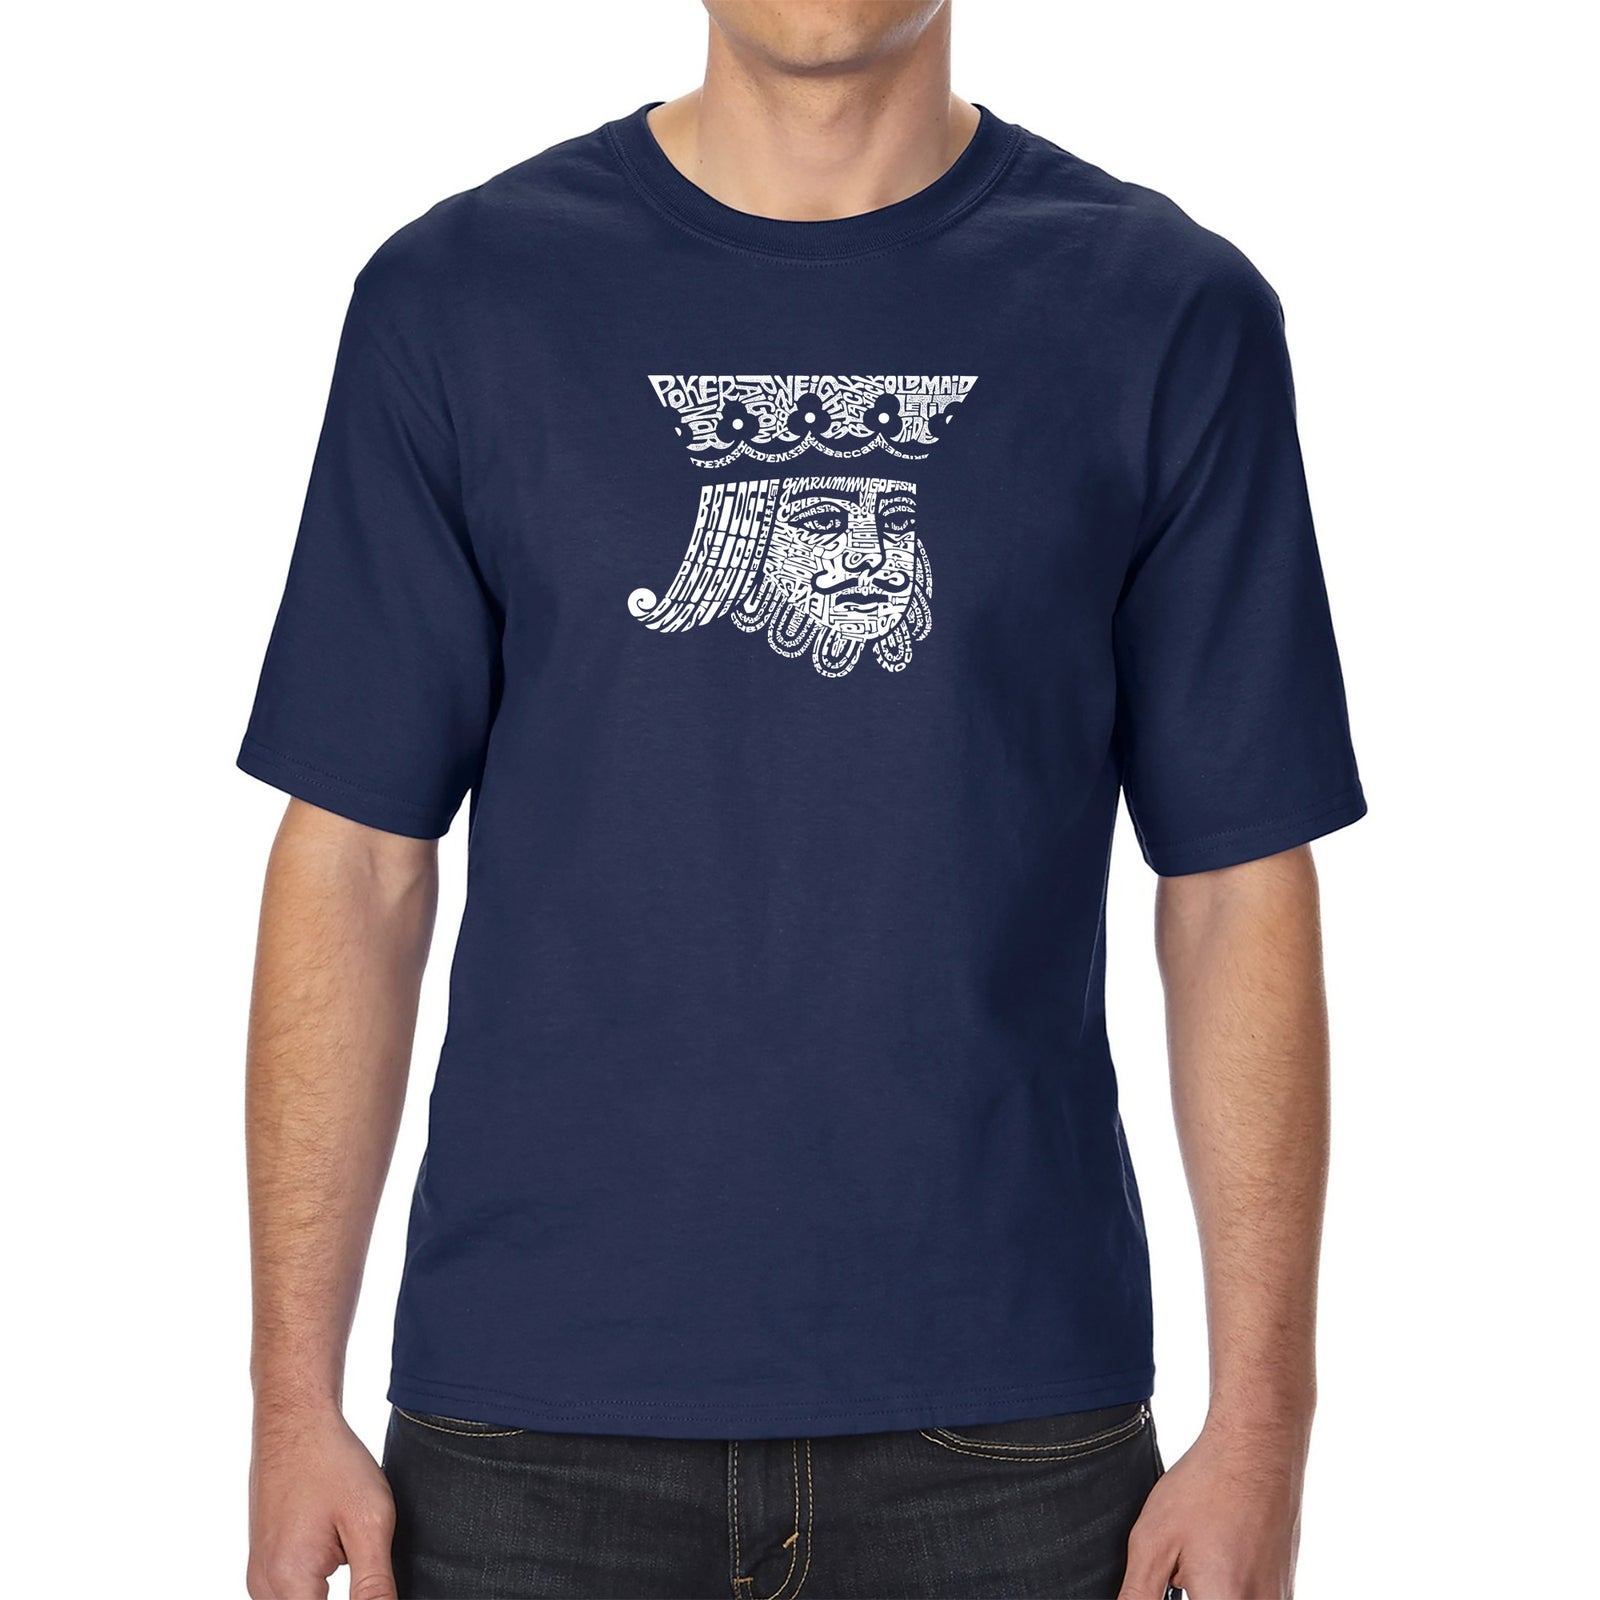 Men's Tall and Long Word Art T-shirt - King of Spades